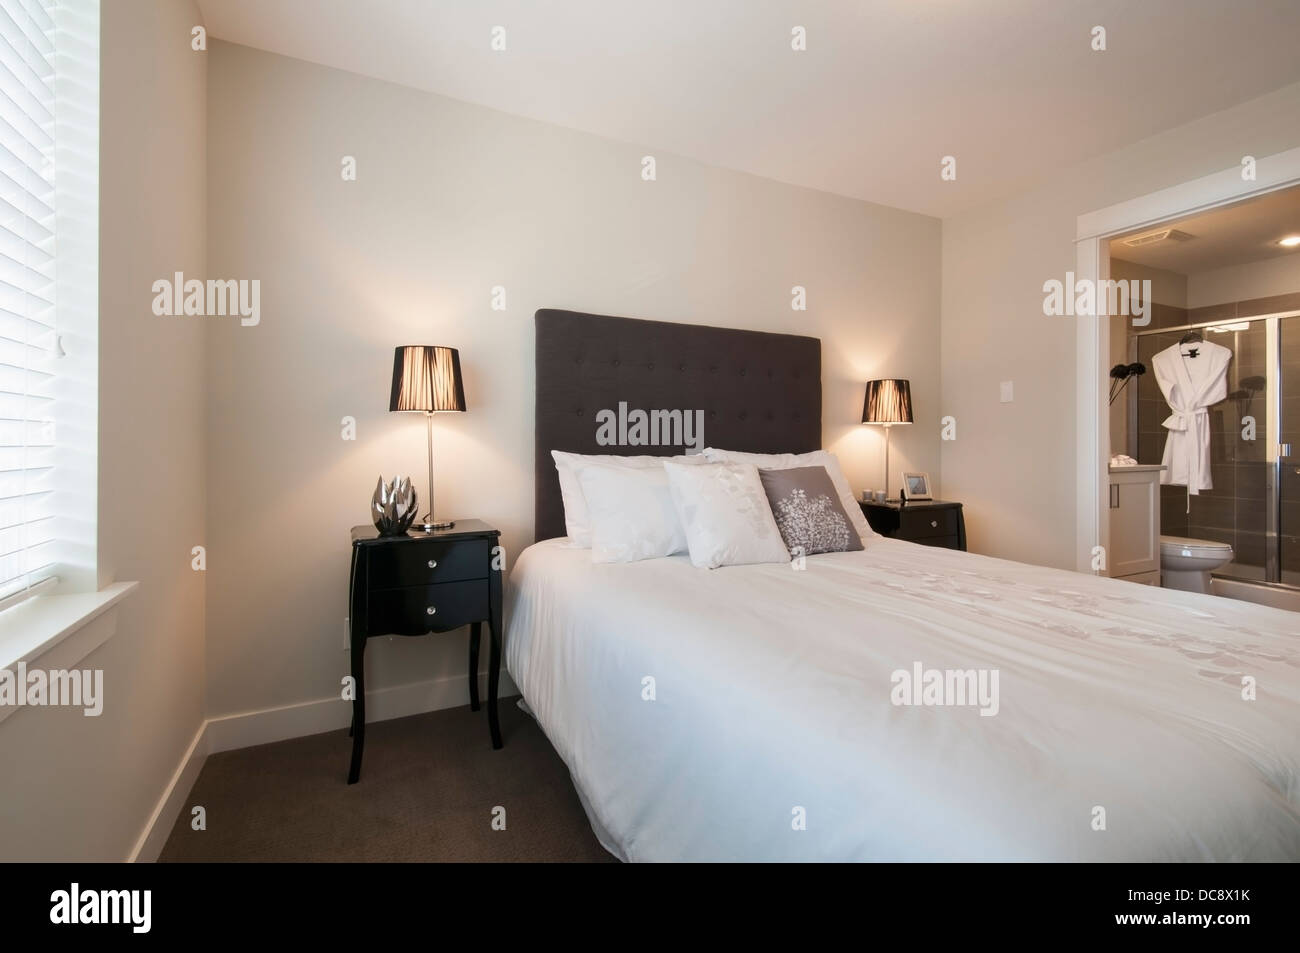 A Bed In Bedroom With An Attached Bathroom Surrey British Columbia Canada